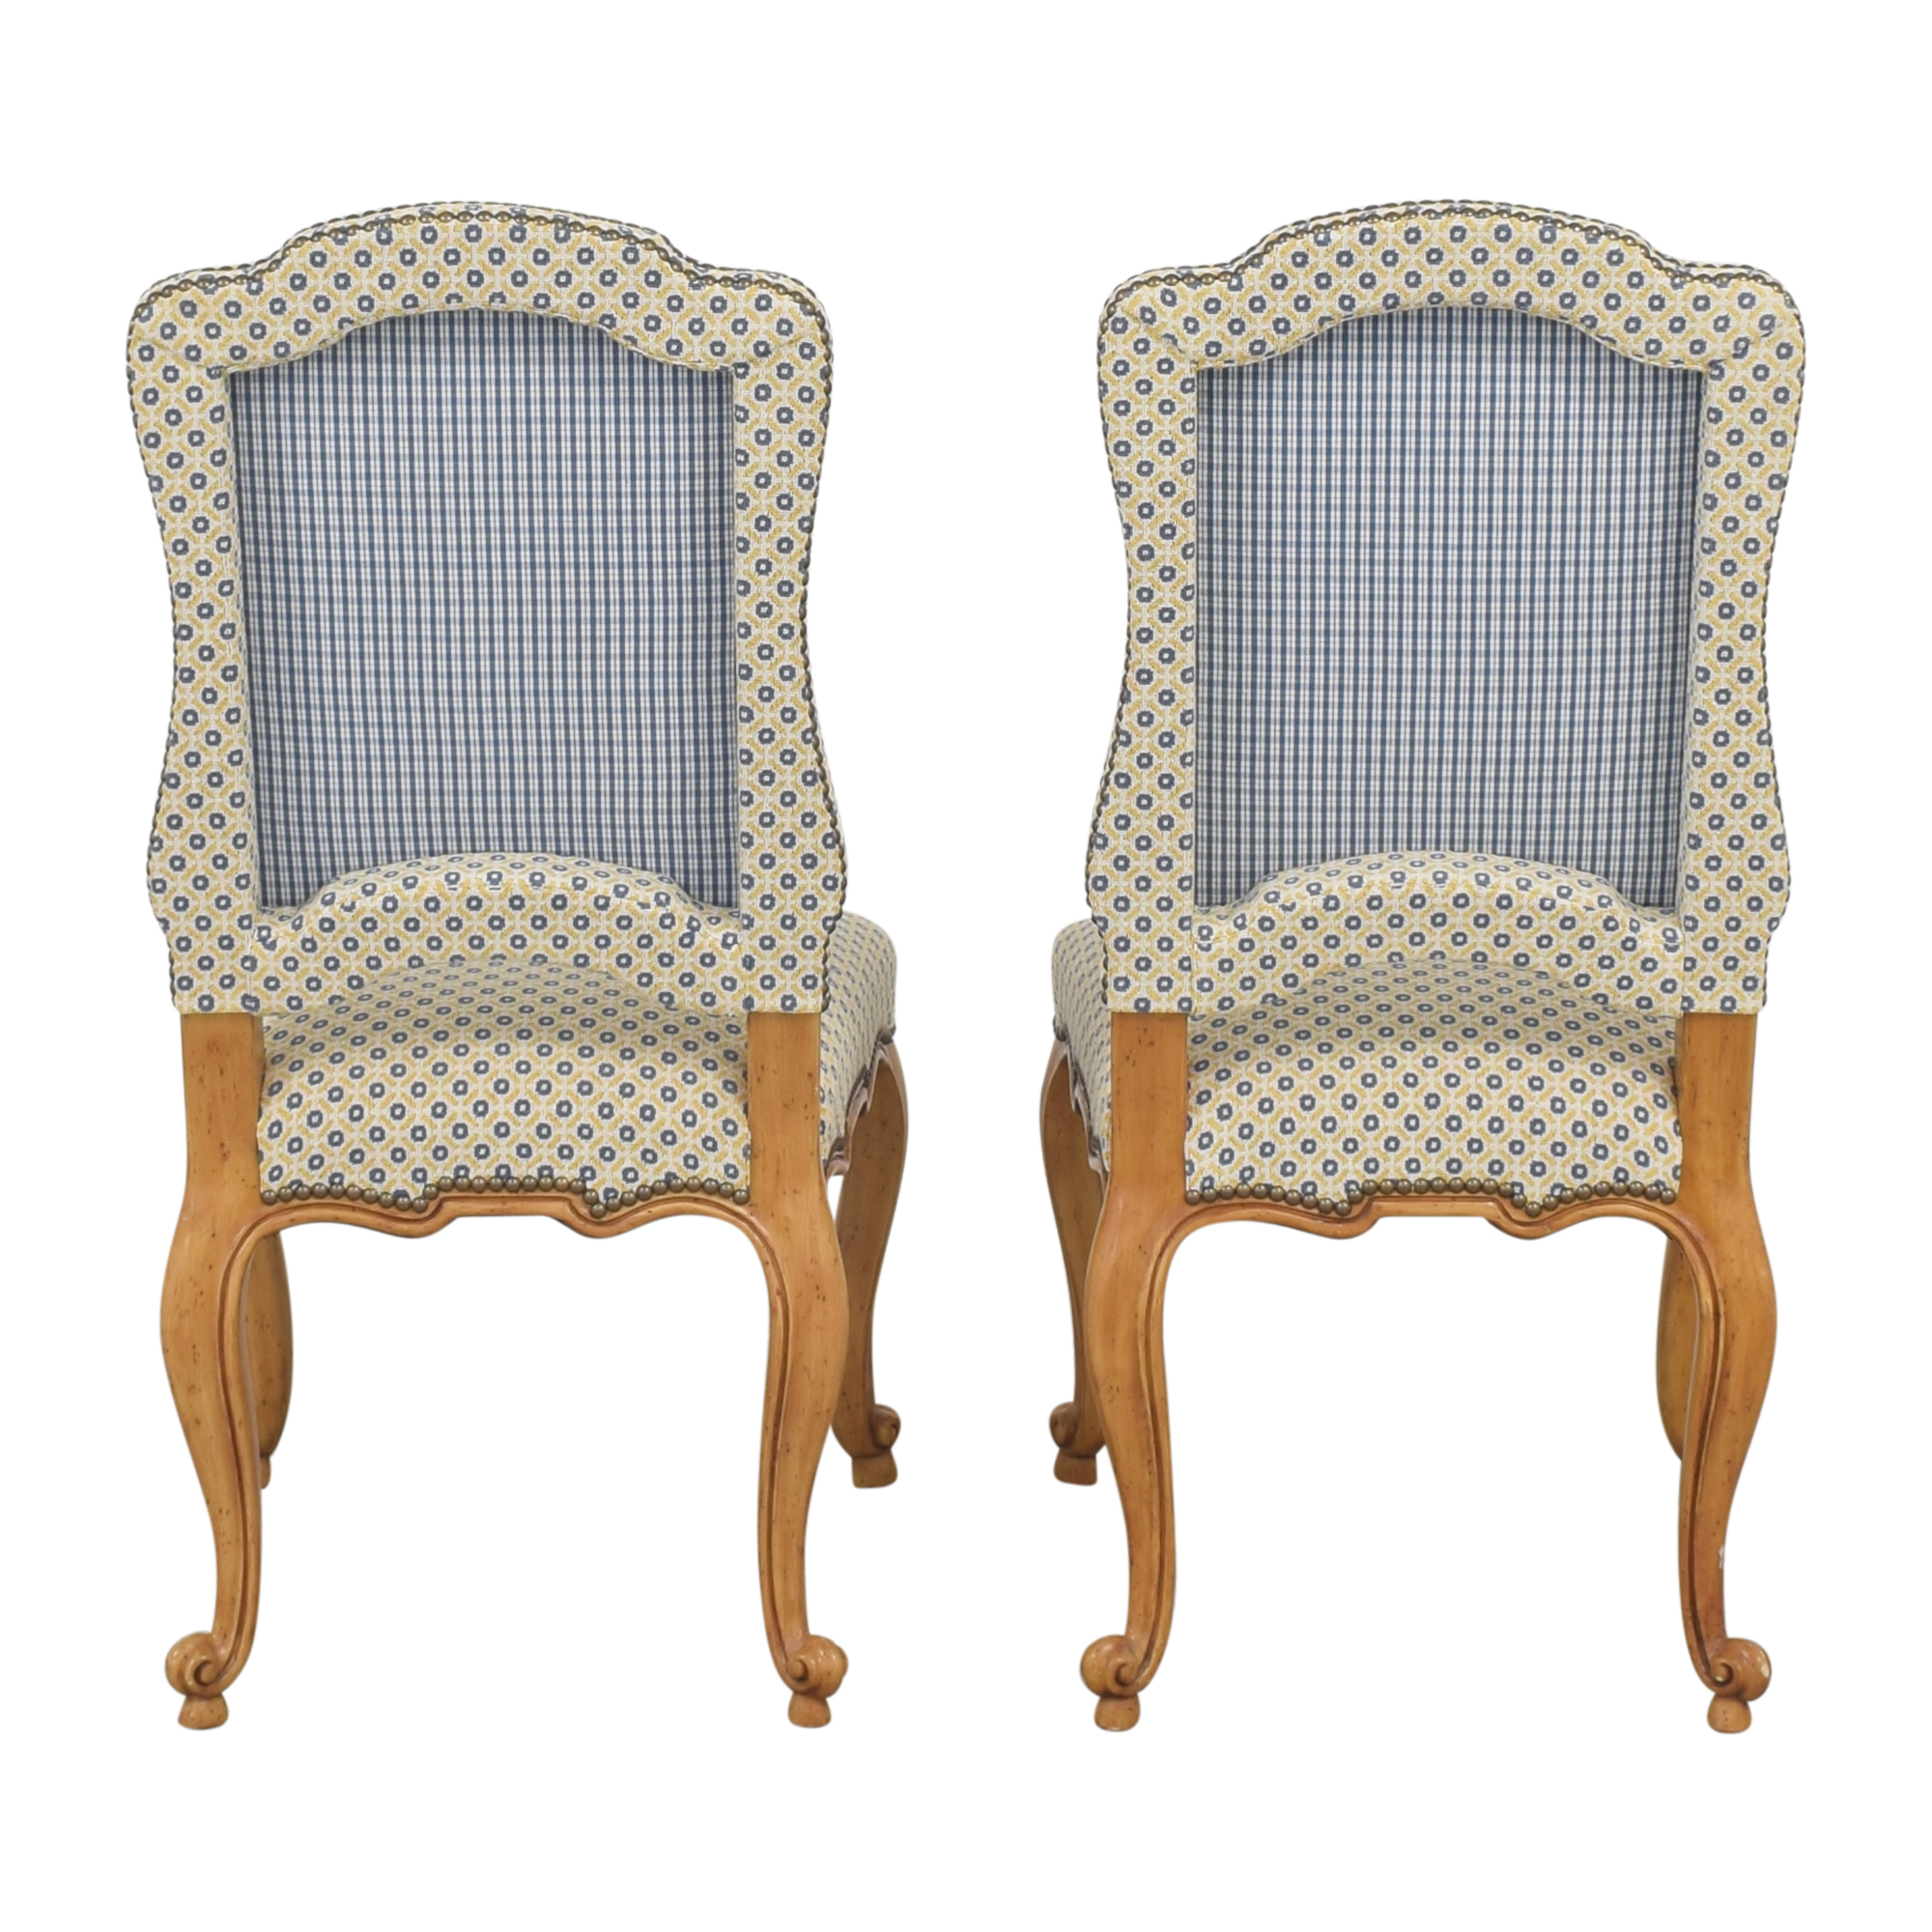 buy Minton-Spidell Regence Dining Side Chairs Minton-Spidell Dining Chairs